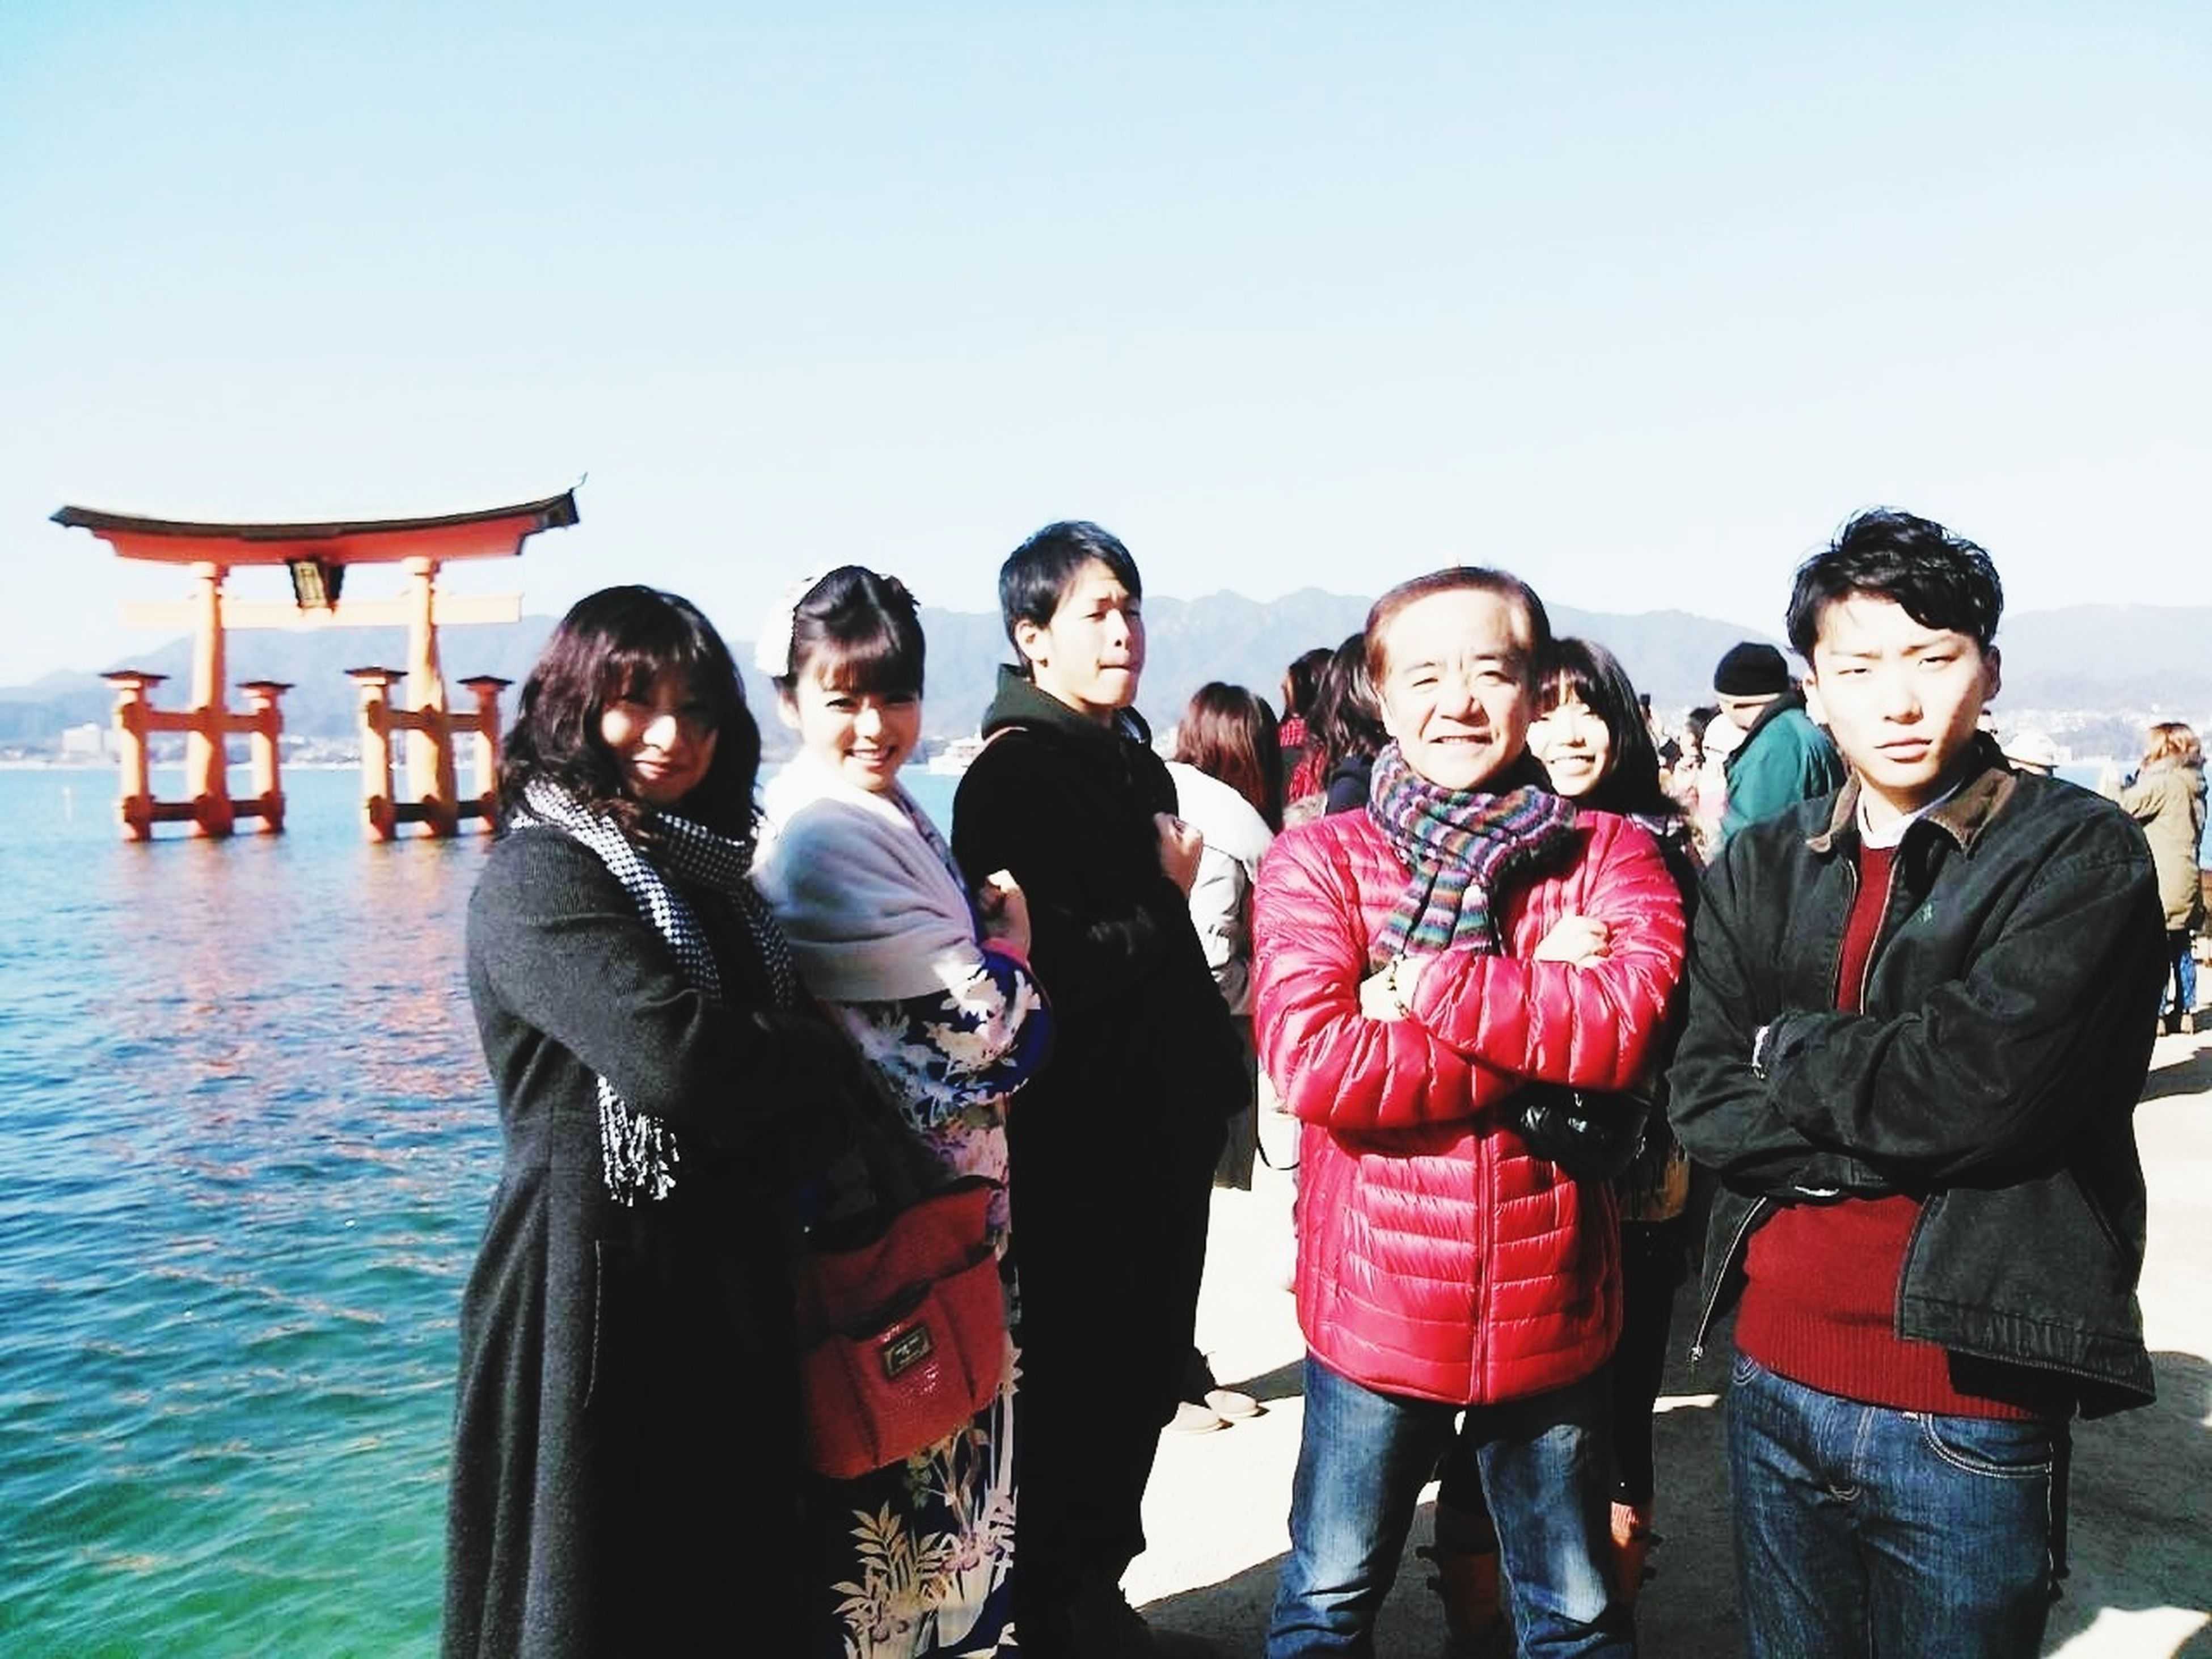 togetherness, lifestyles, bonding, leisure activity, water, love, friendship, men, clear sky, standing, casual clothing, family, young men, sea, enjoyment, vacations, copy space, fun